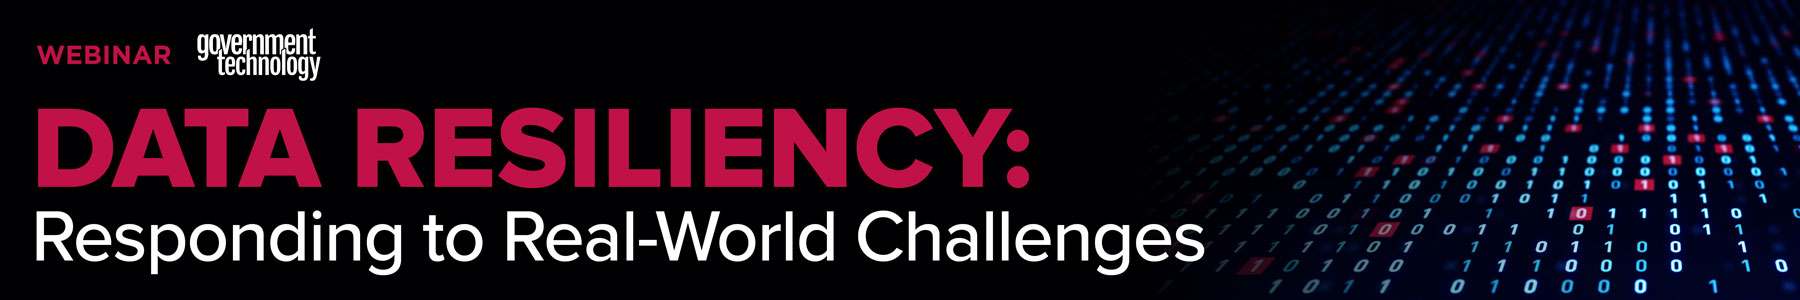 Data Resiliency: Responding to Real-World Challenges